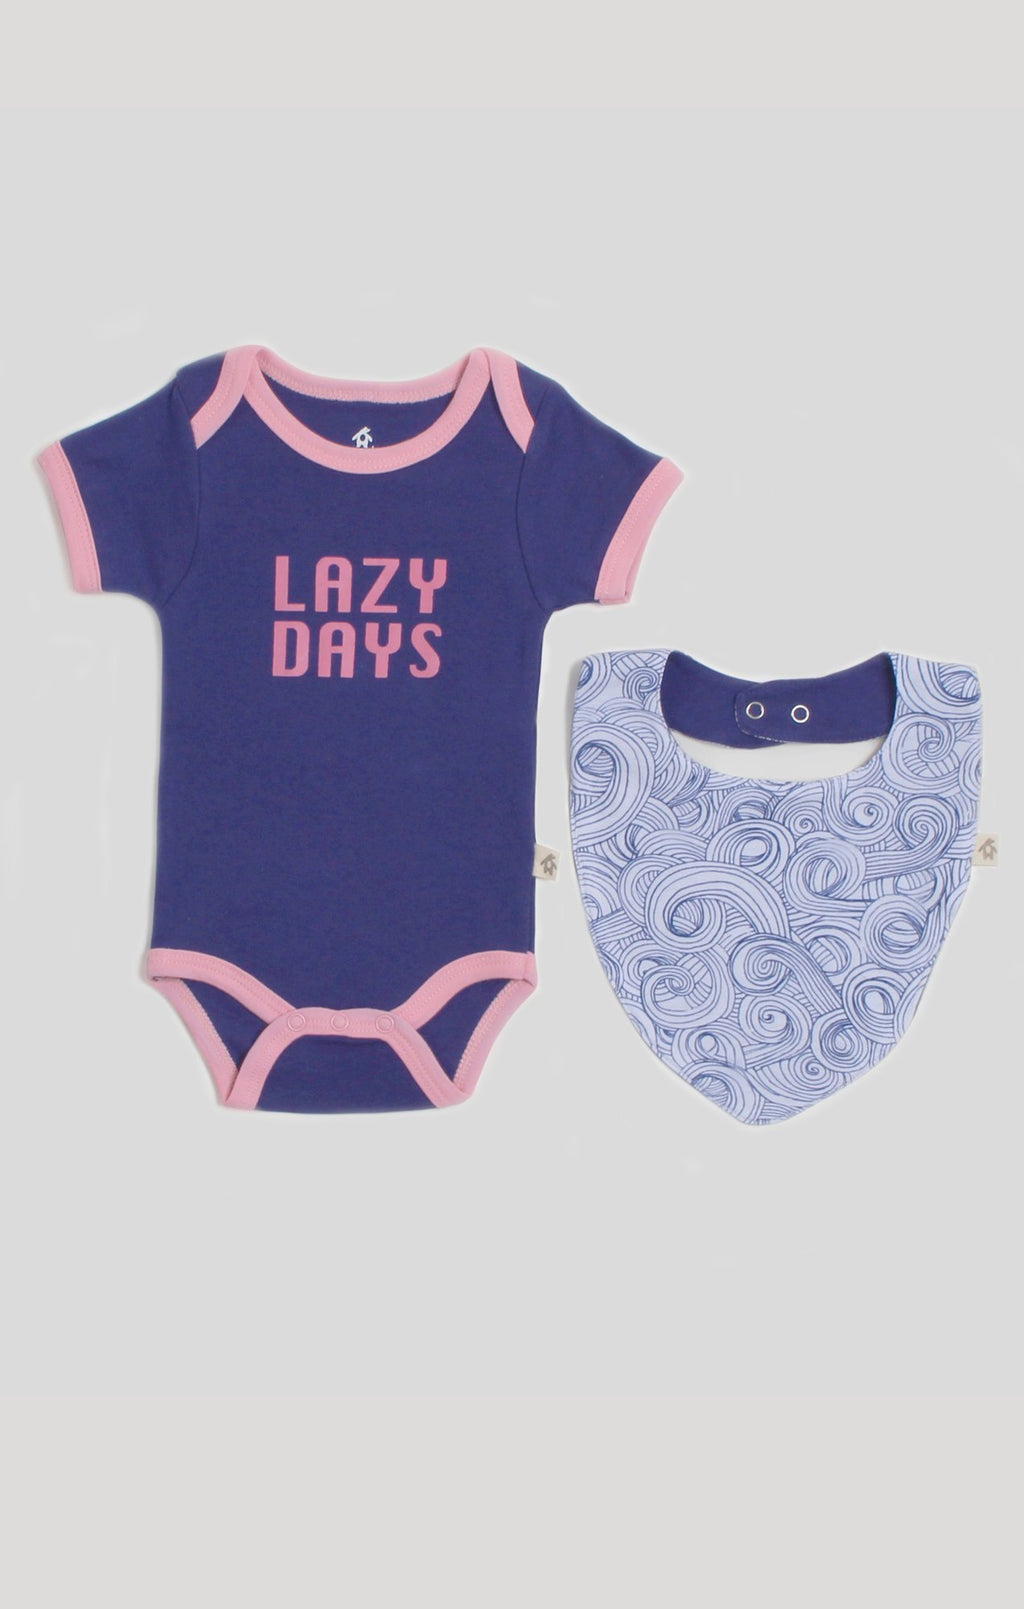 Baby Clothes | Blue Swirl Bodysuit and Bib Set